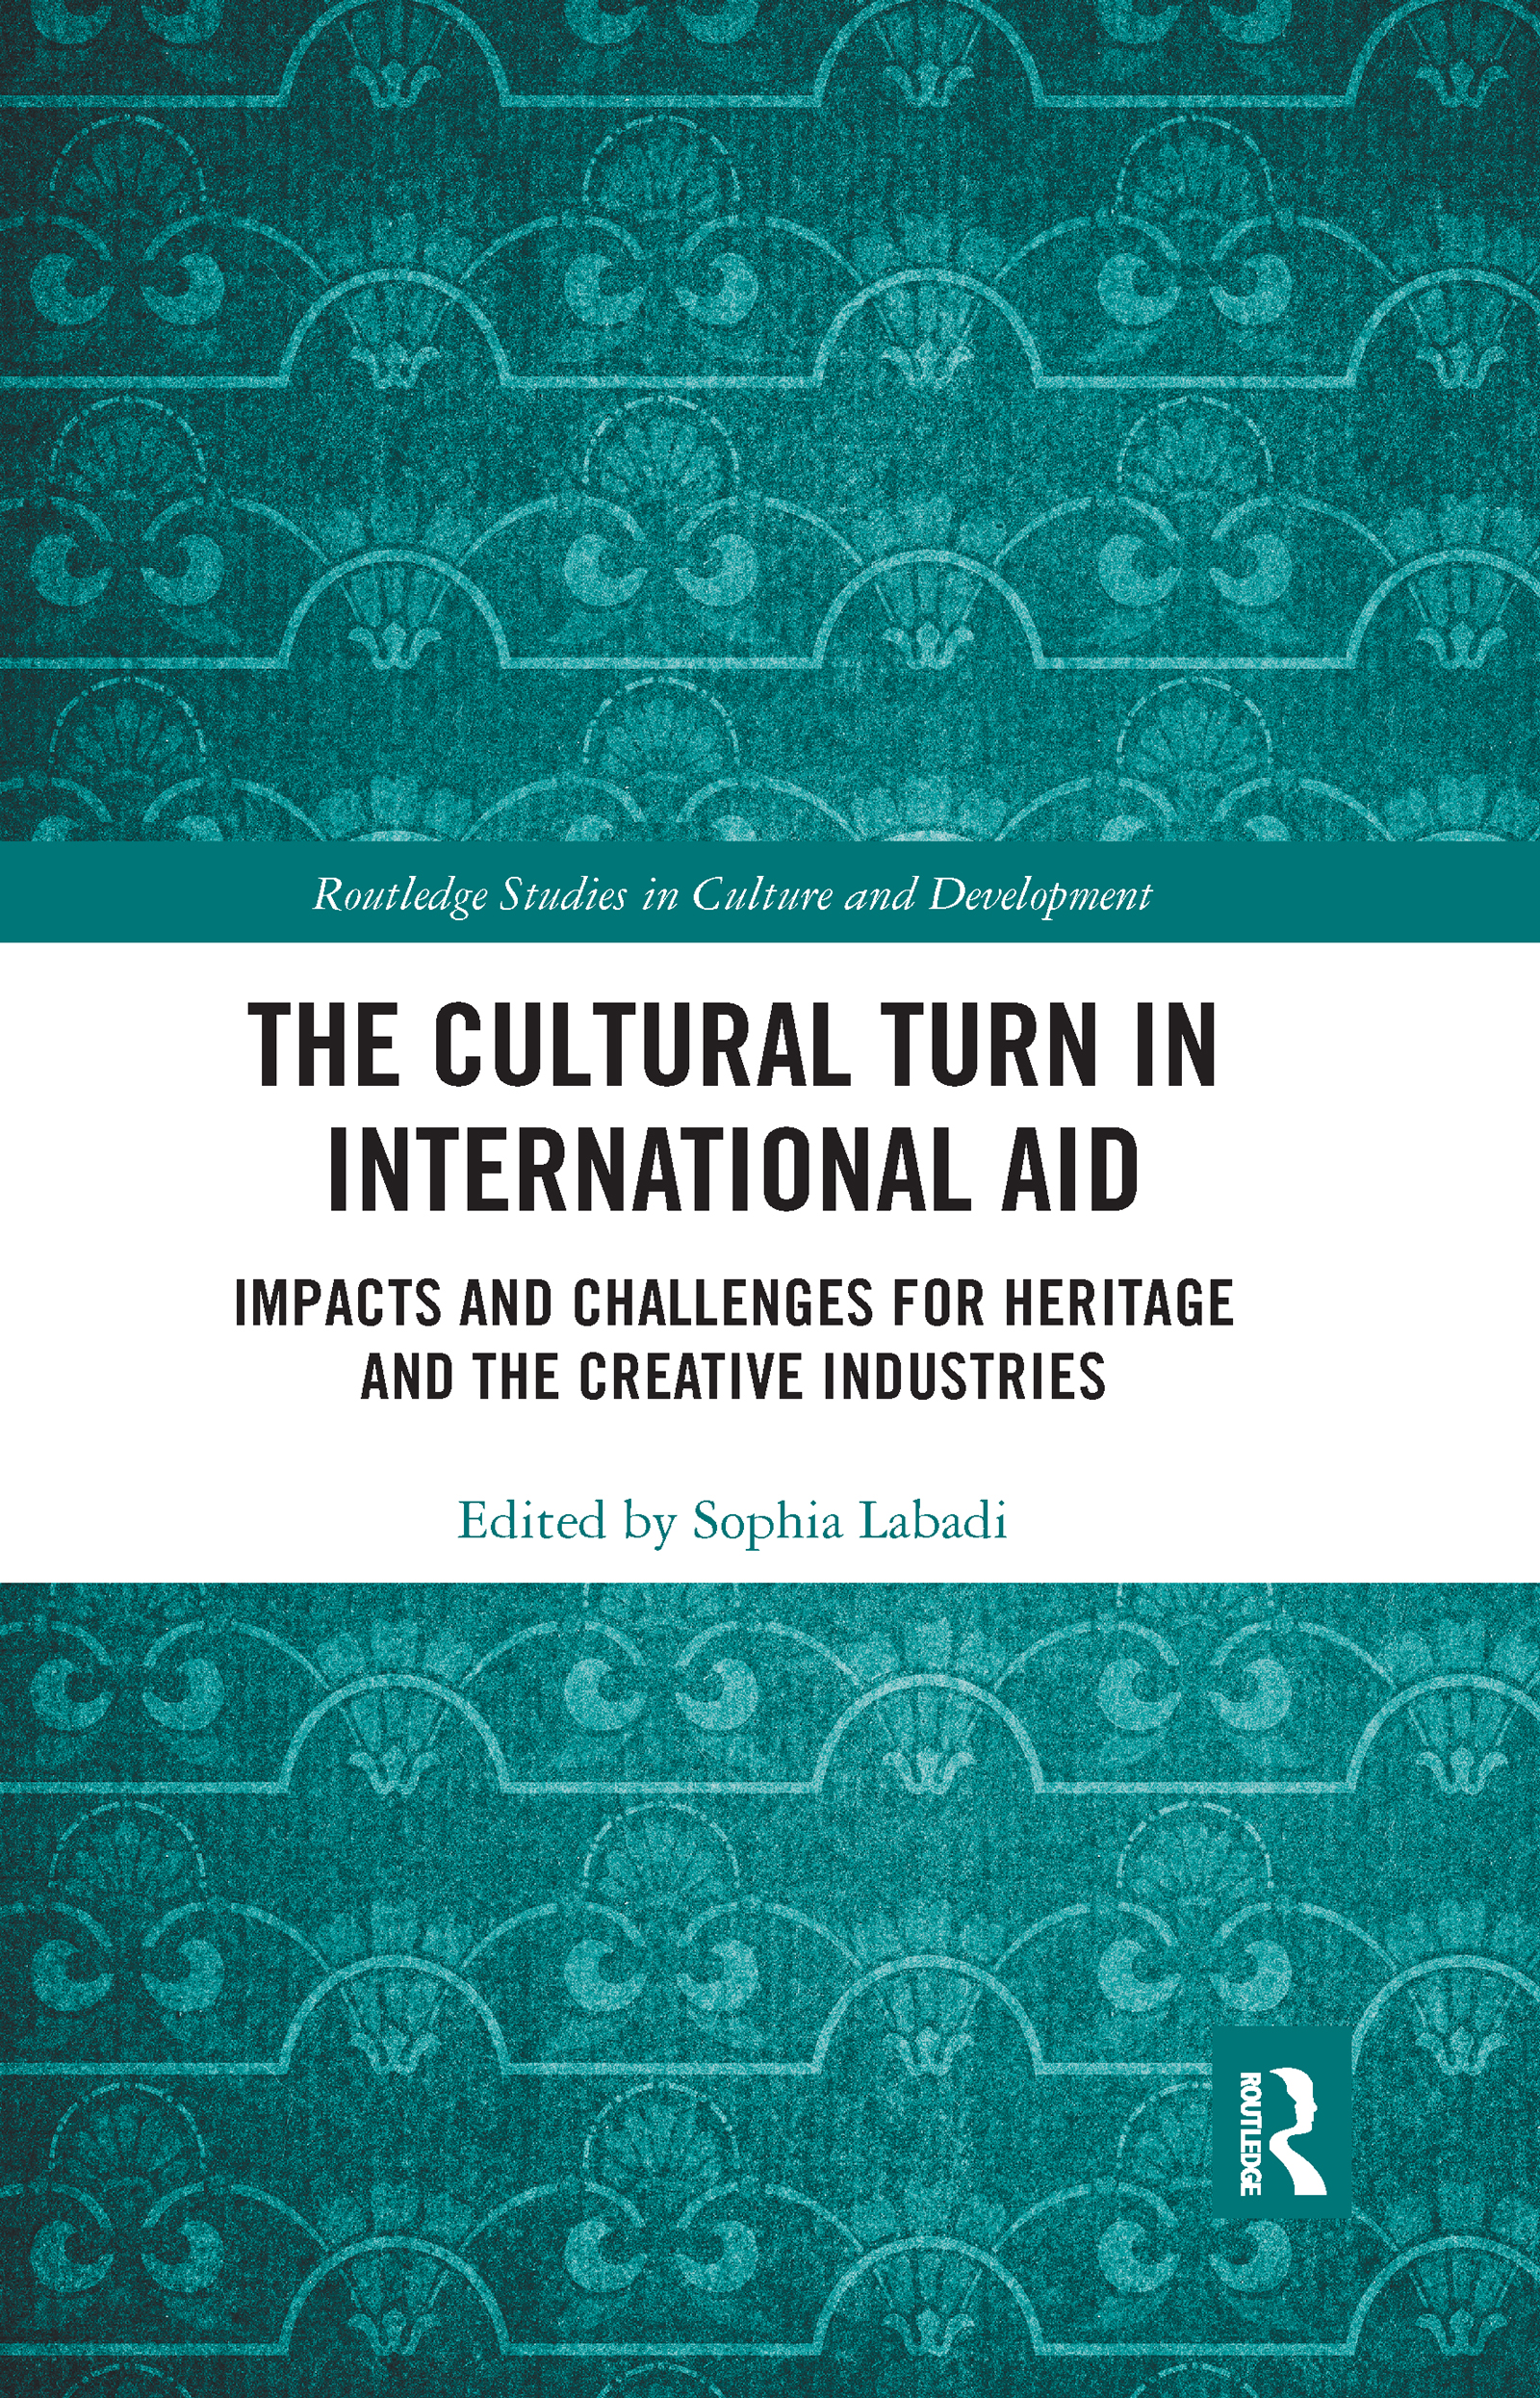 The Cultural Turn in International Aid